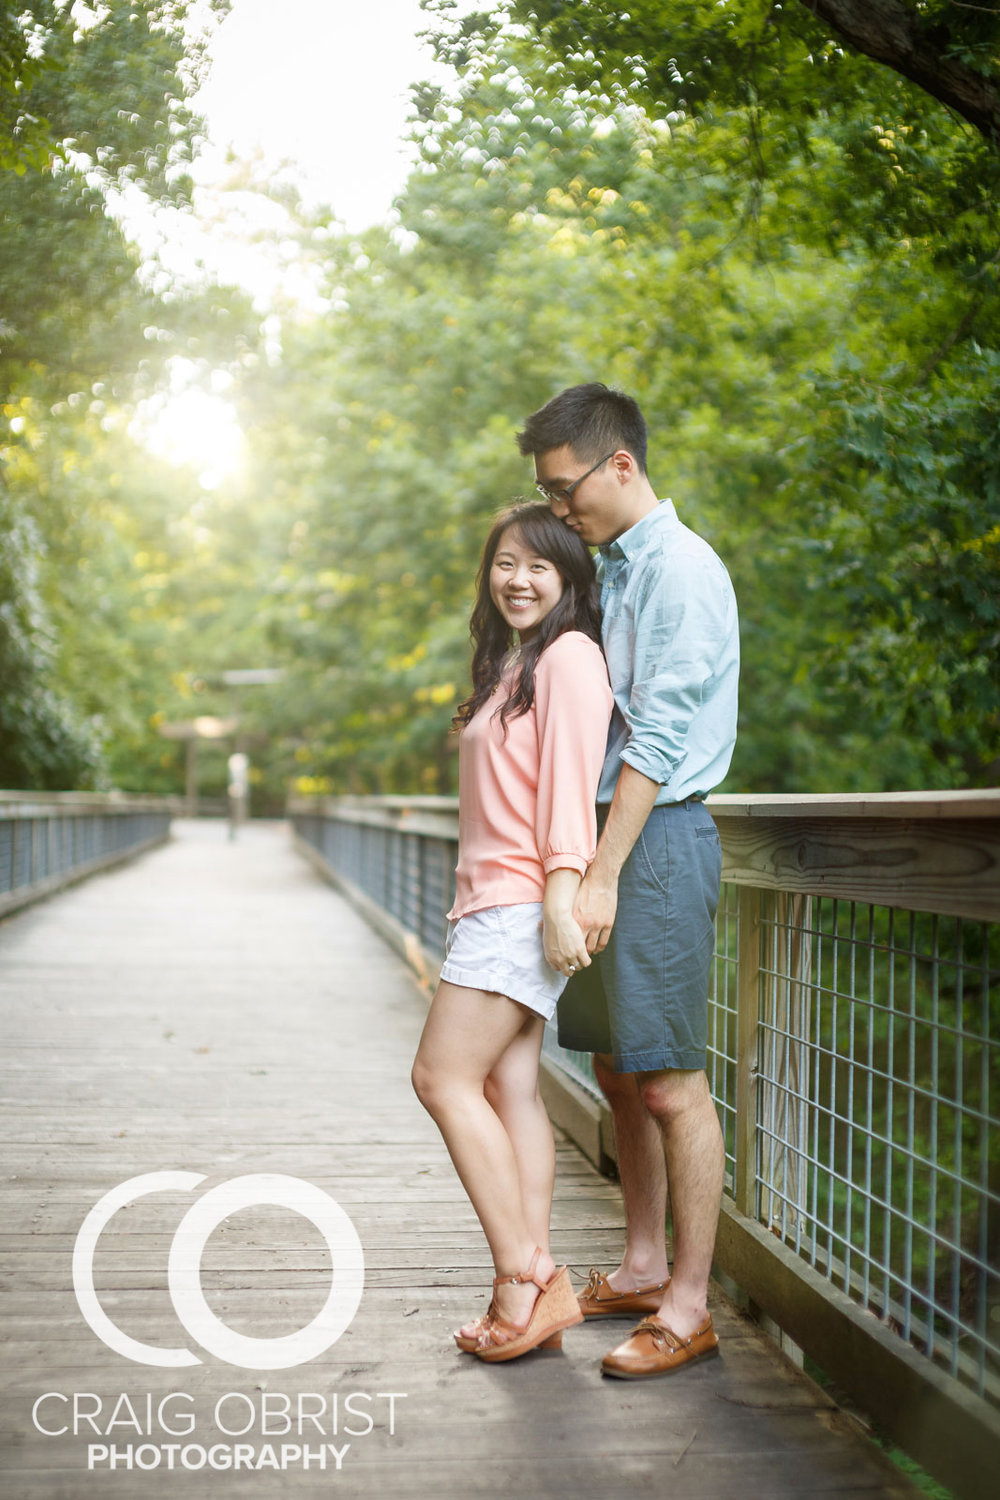 Mcdaniel-farm-park-duluth-atlanta-skyline-engagement-portraits-13-of-29.jpg